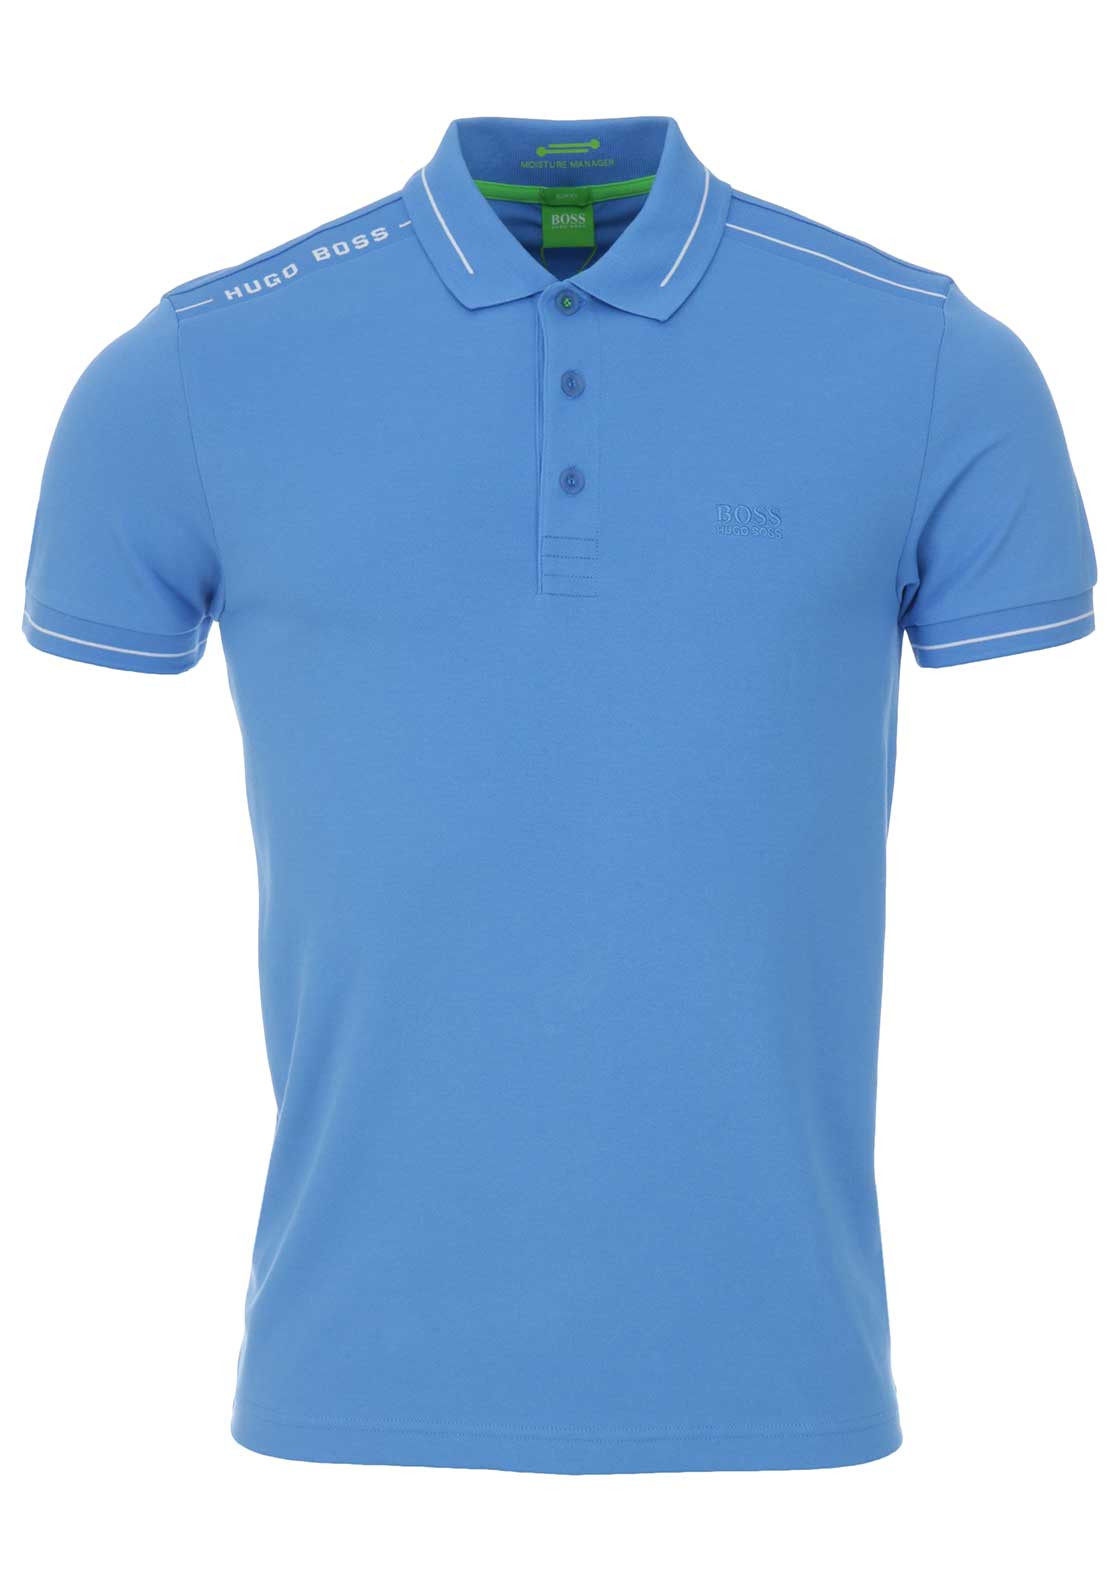 f49972a67 Hugo Boss Men s Slim Fit Paule Polo-Shirt